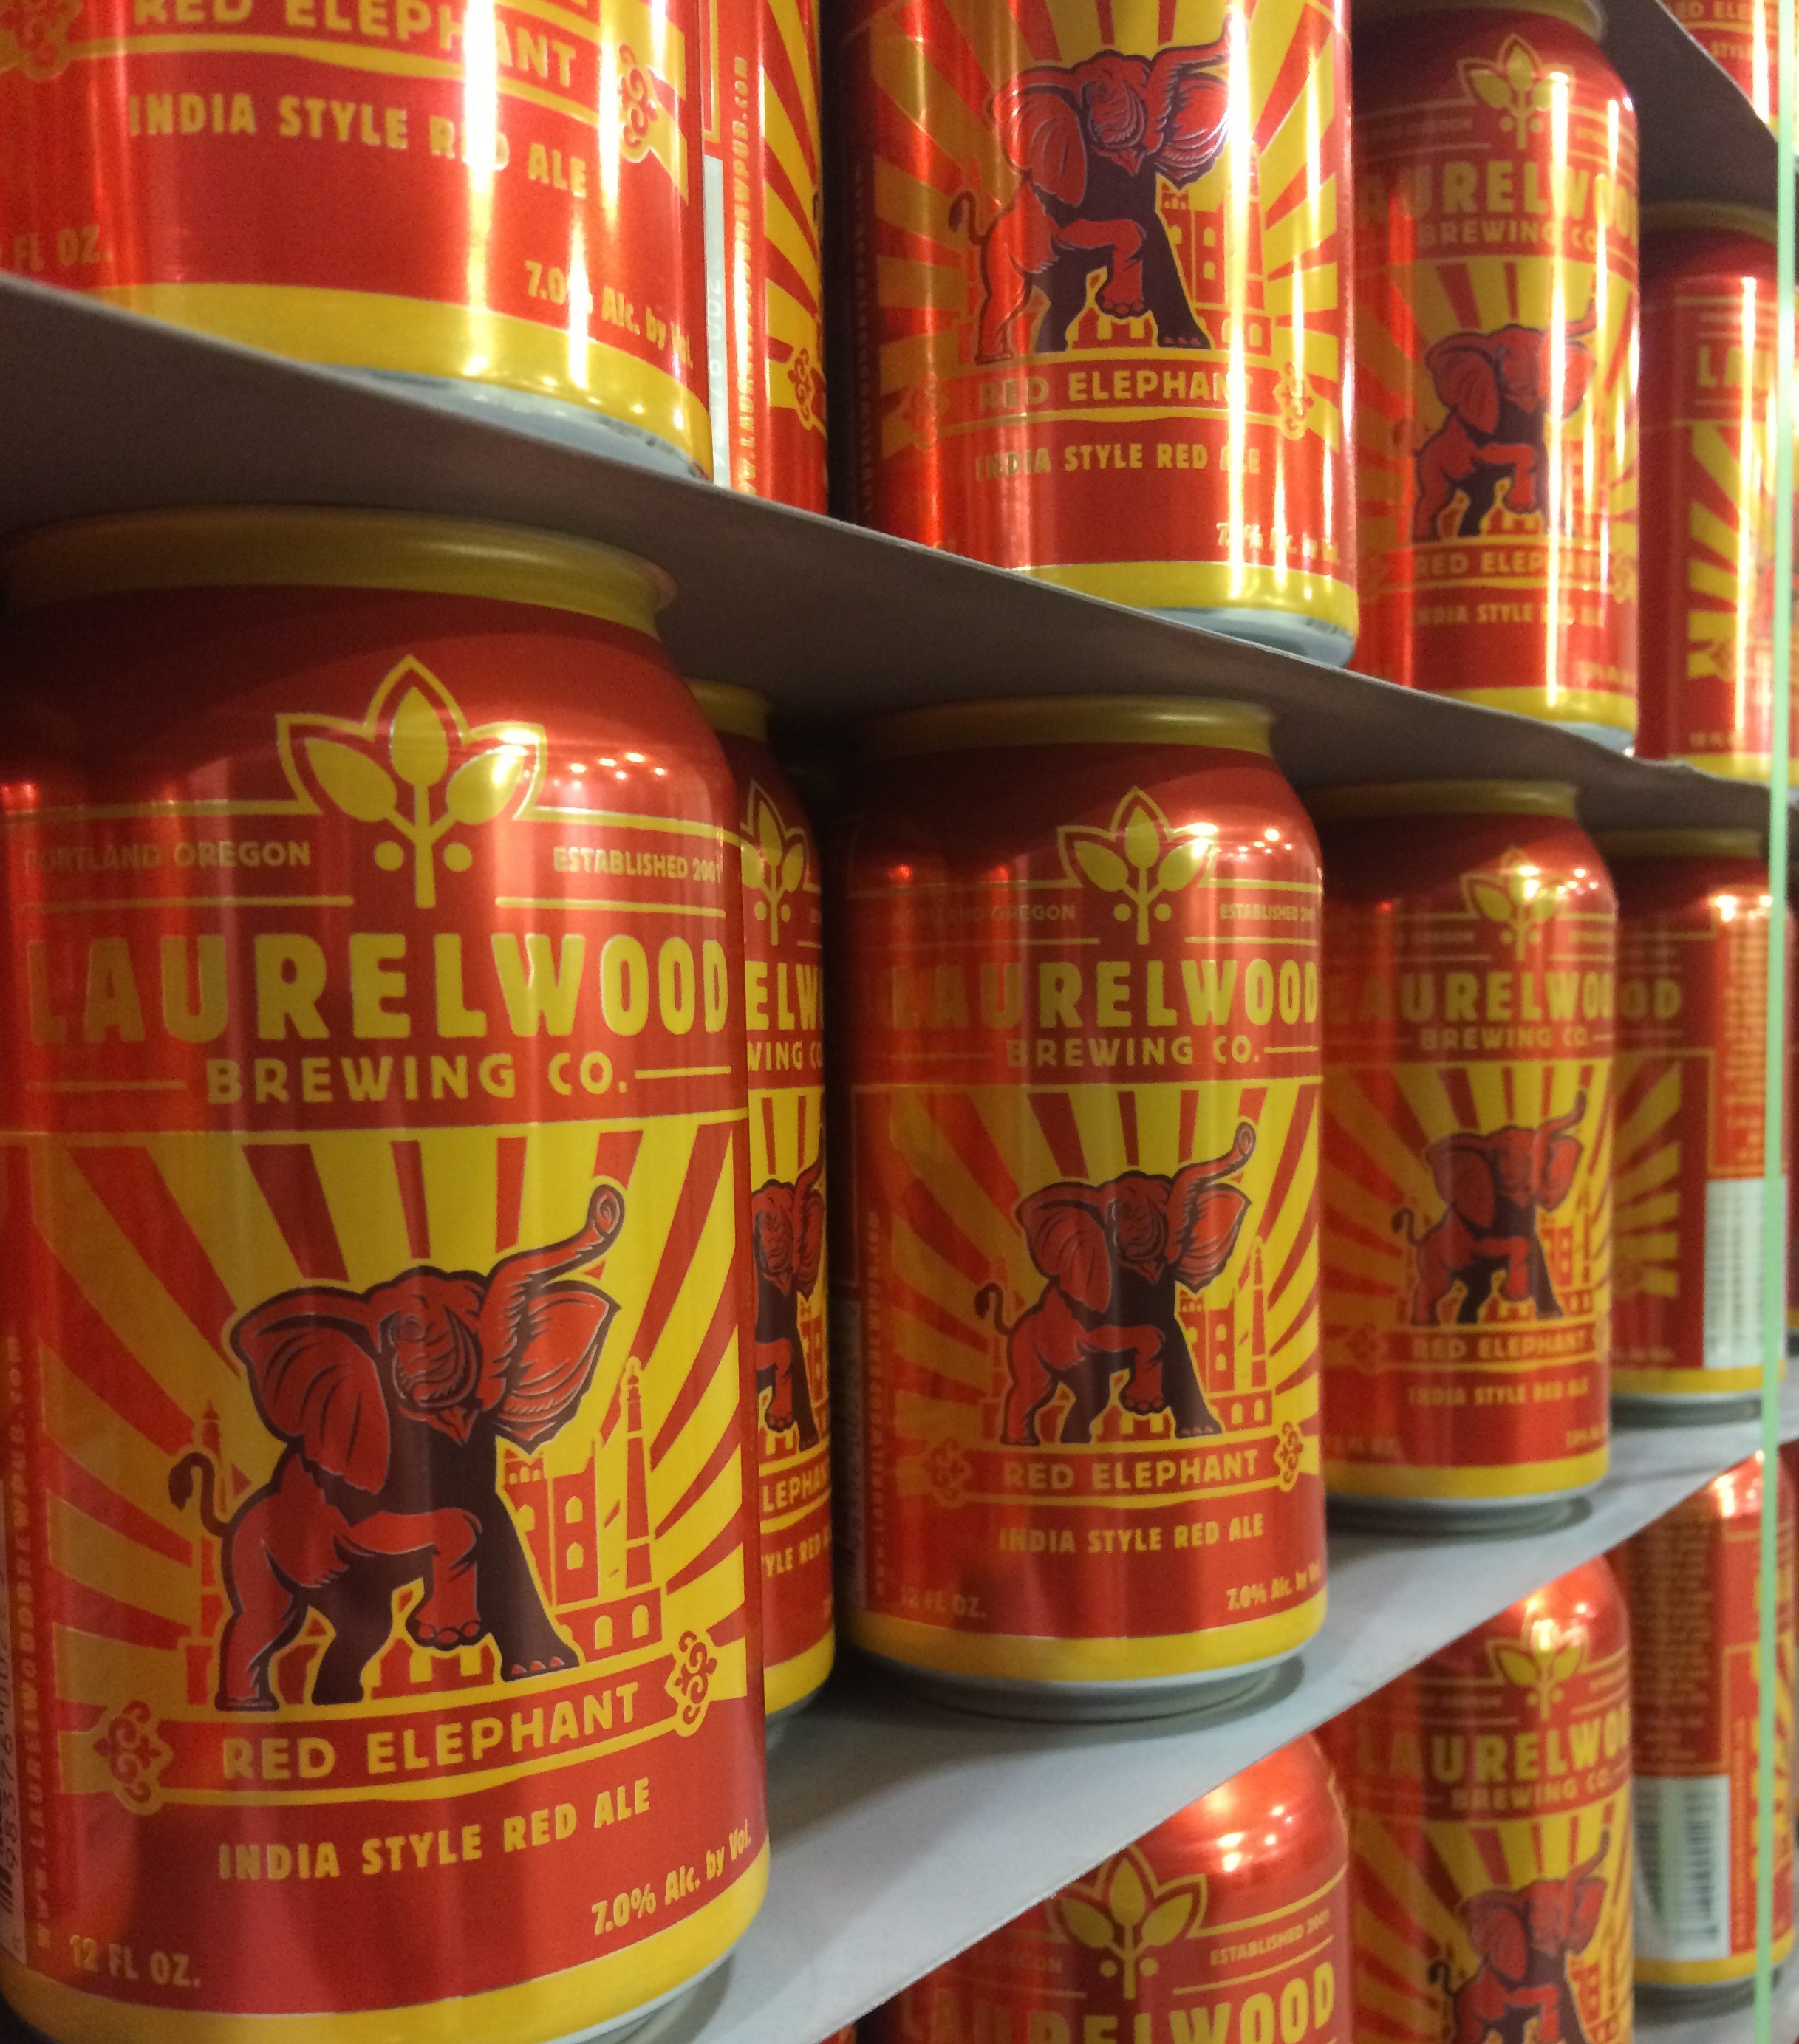 Laurelwood Brewing Red Elephant IRA in Cans